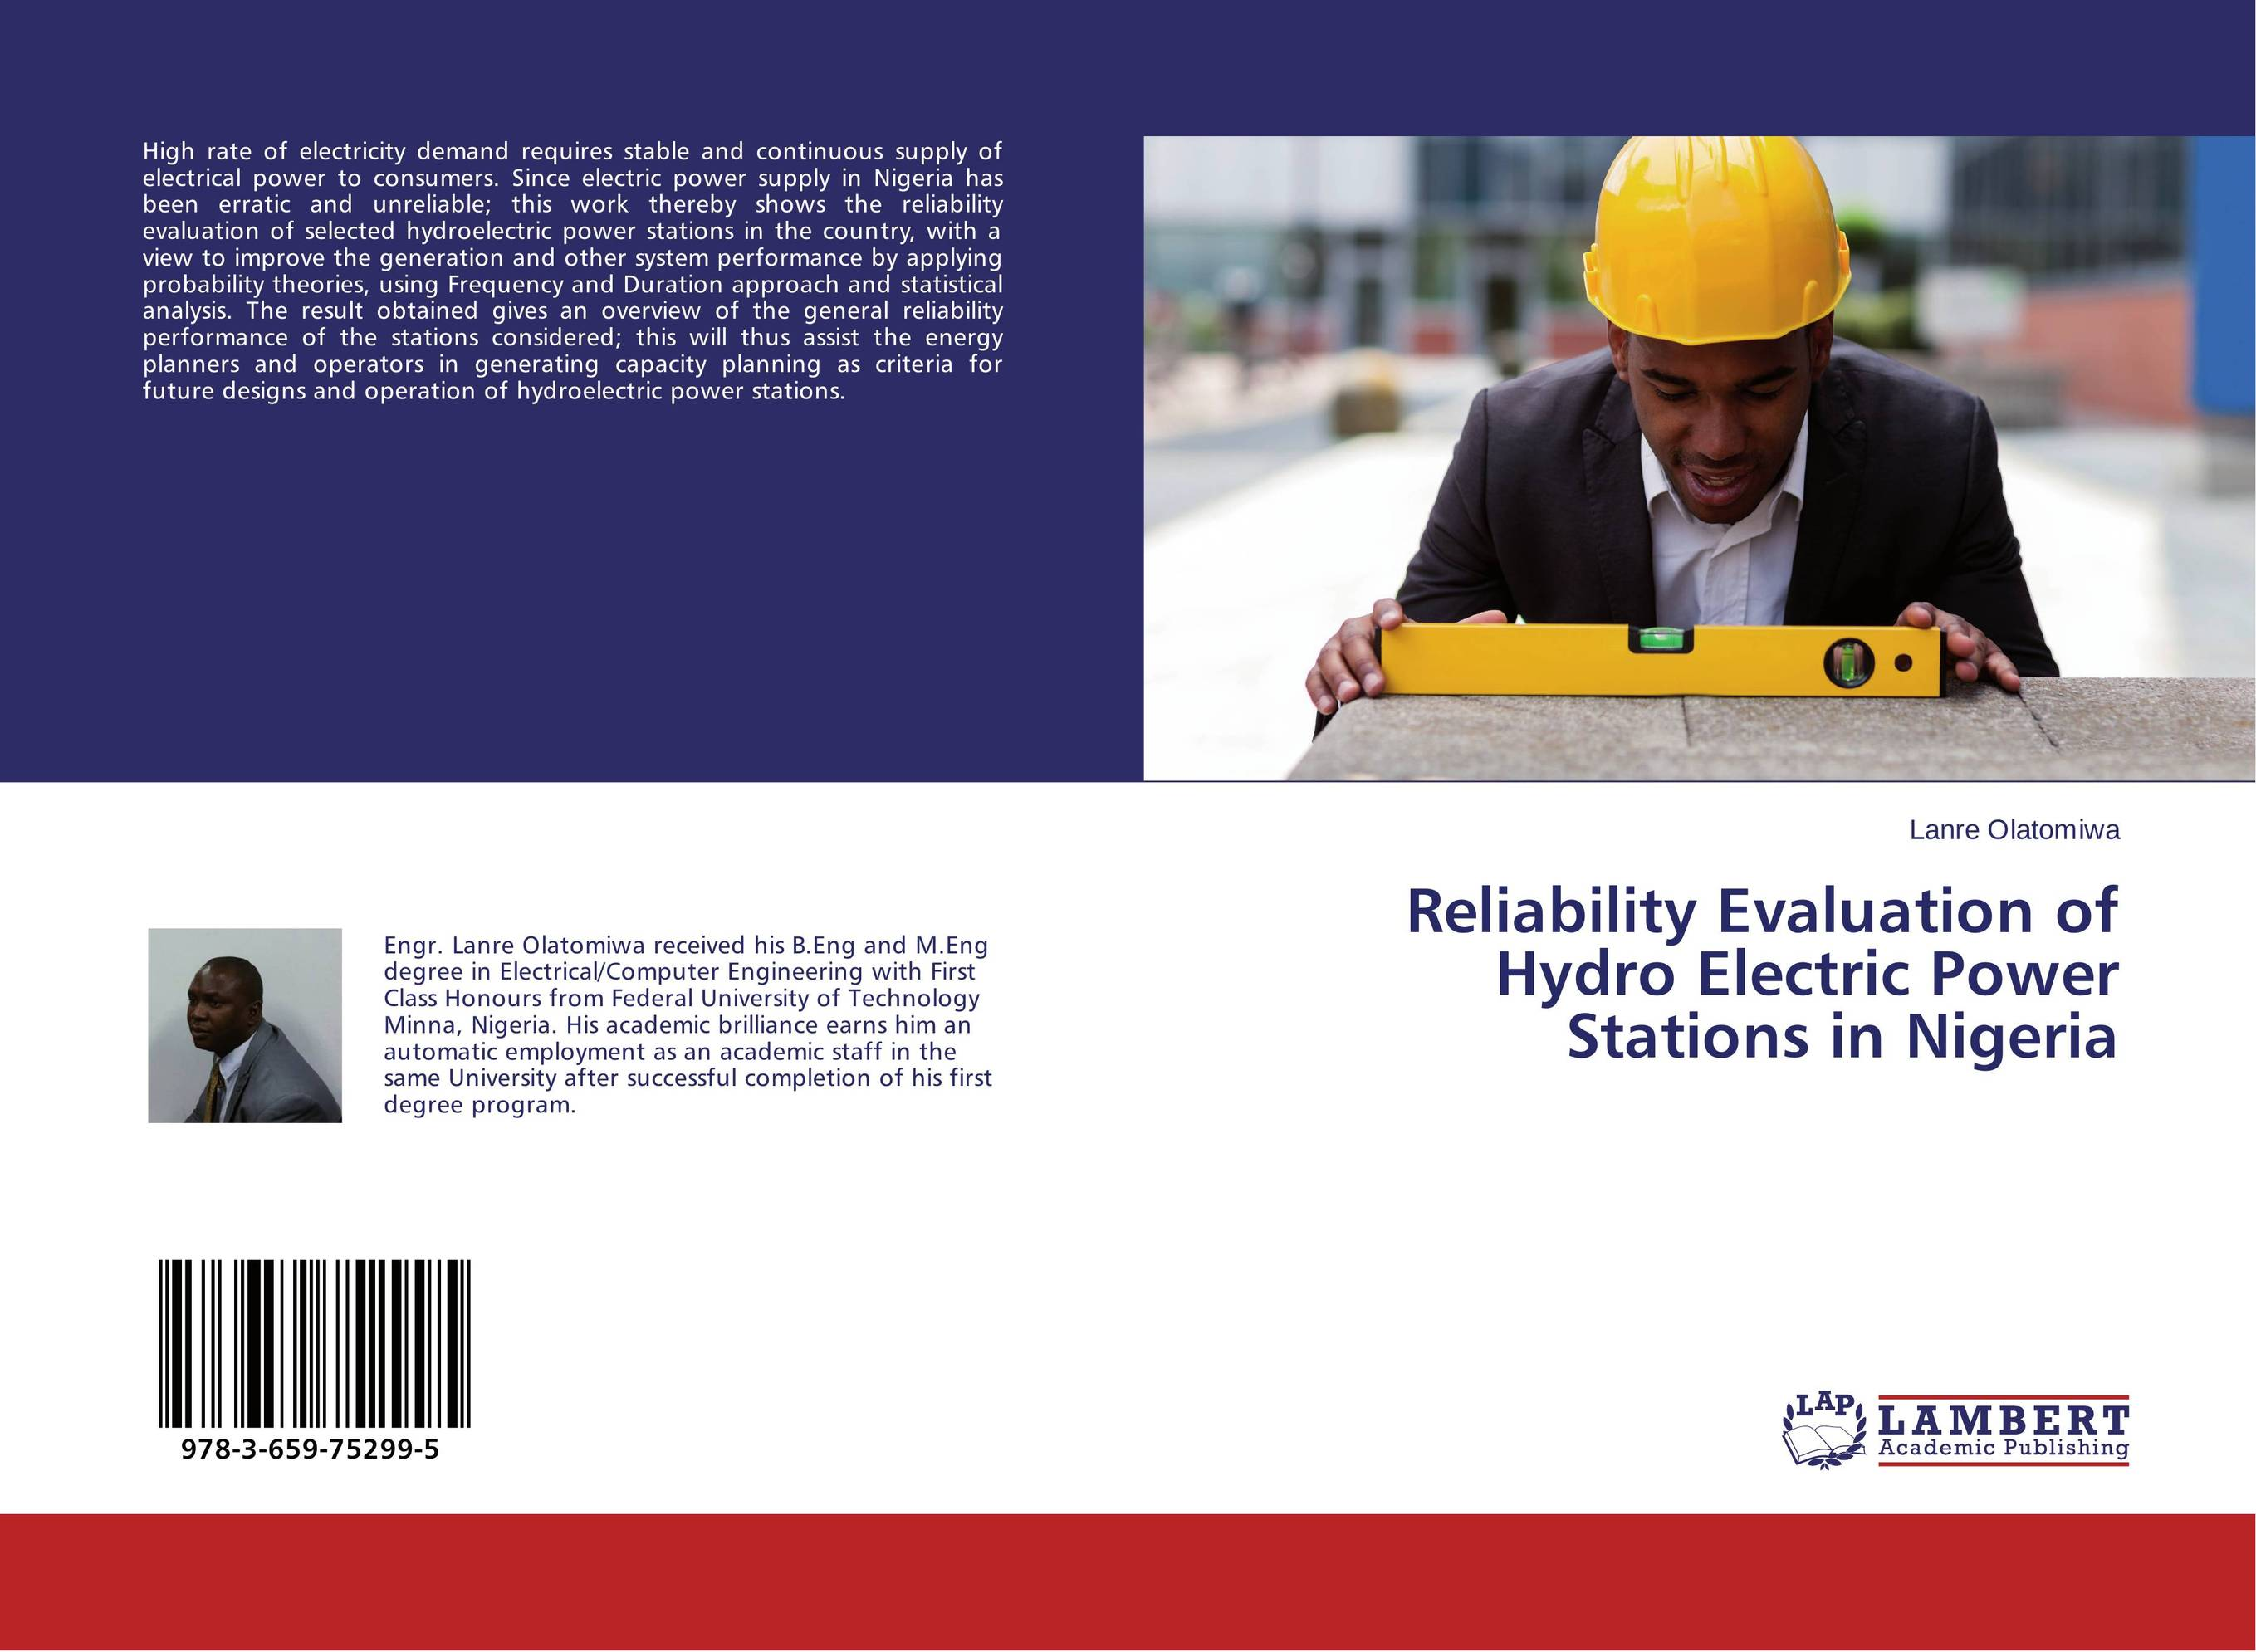 Reliability Evaluation of Hydro Electric Power Stations in Nigeria evaluation of aqueous solubility of hydroxamic acids by pls modelling